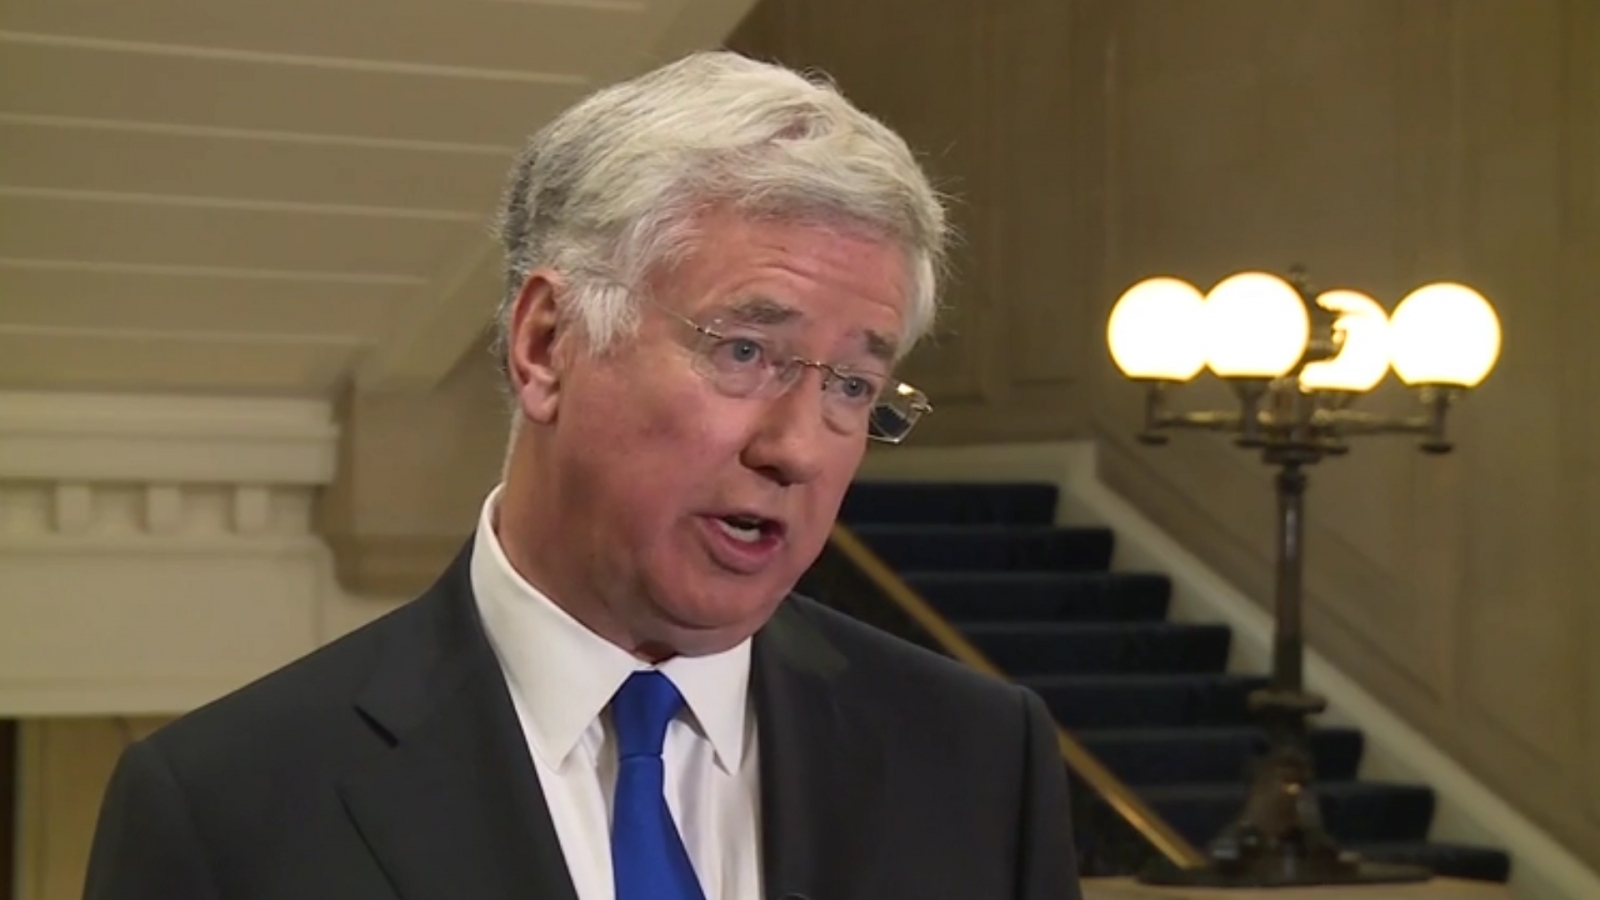 Michael Fallon: UK will support any US retaliation against Assad over possible Syria chemical attacks